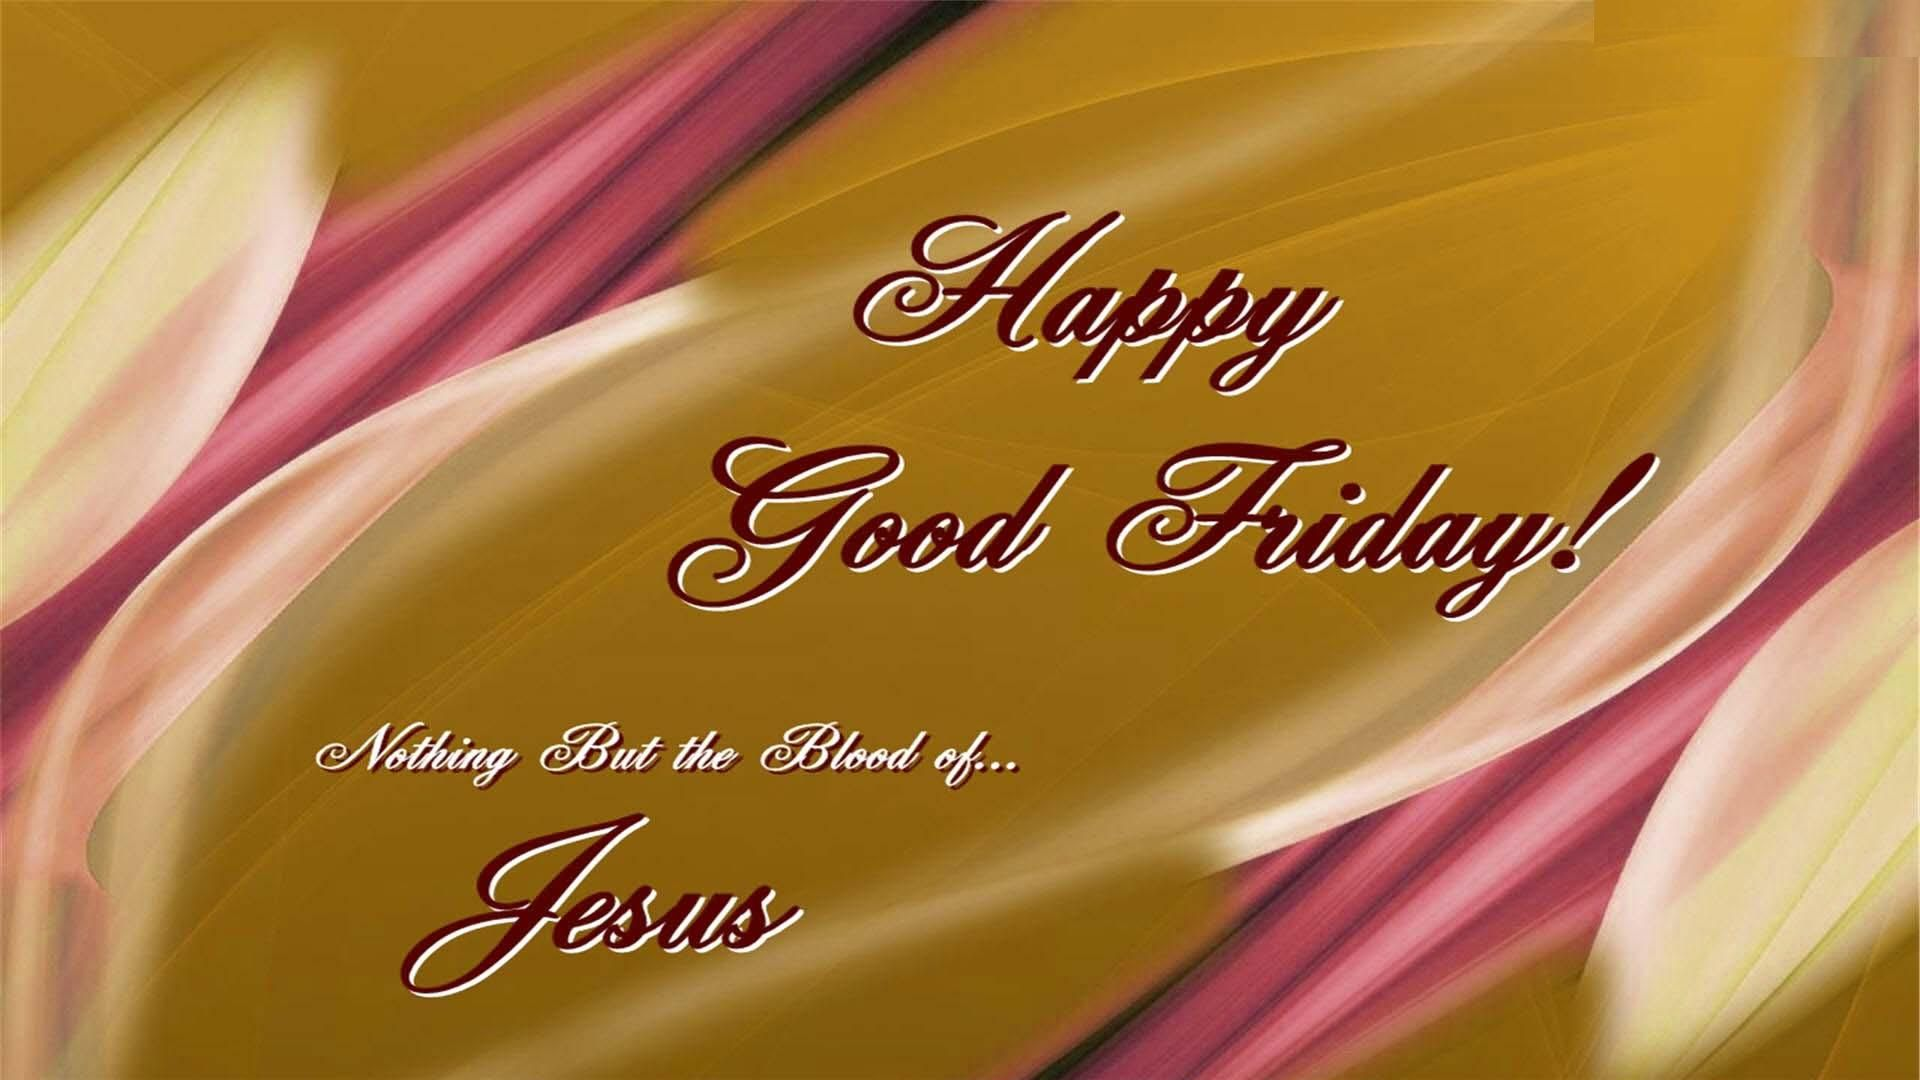 Good friday images good friday is a widely celebrated legal happy good friday messages wishes greetings 2014 kristyandbryce Images